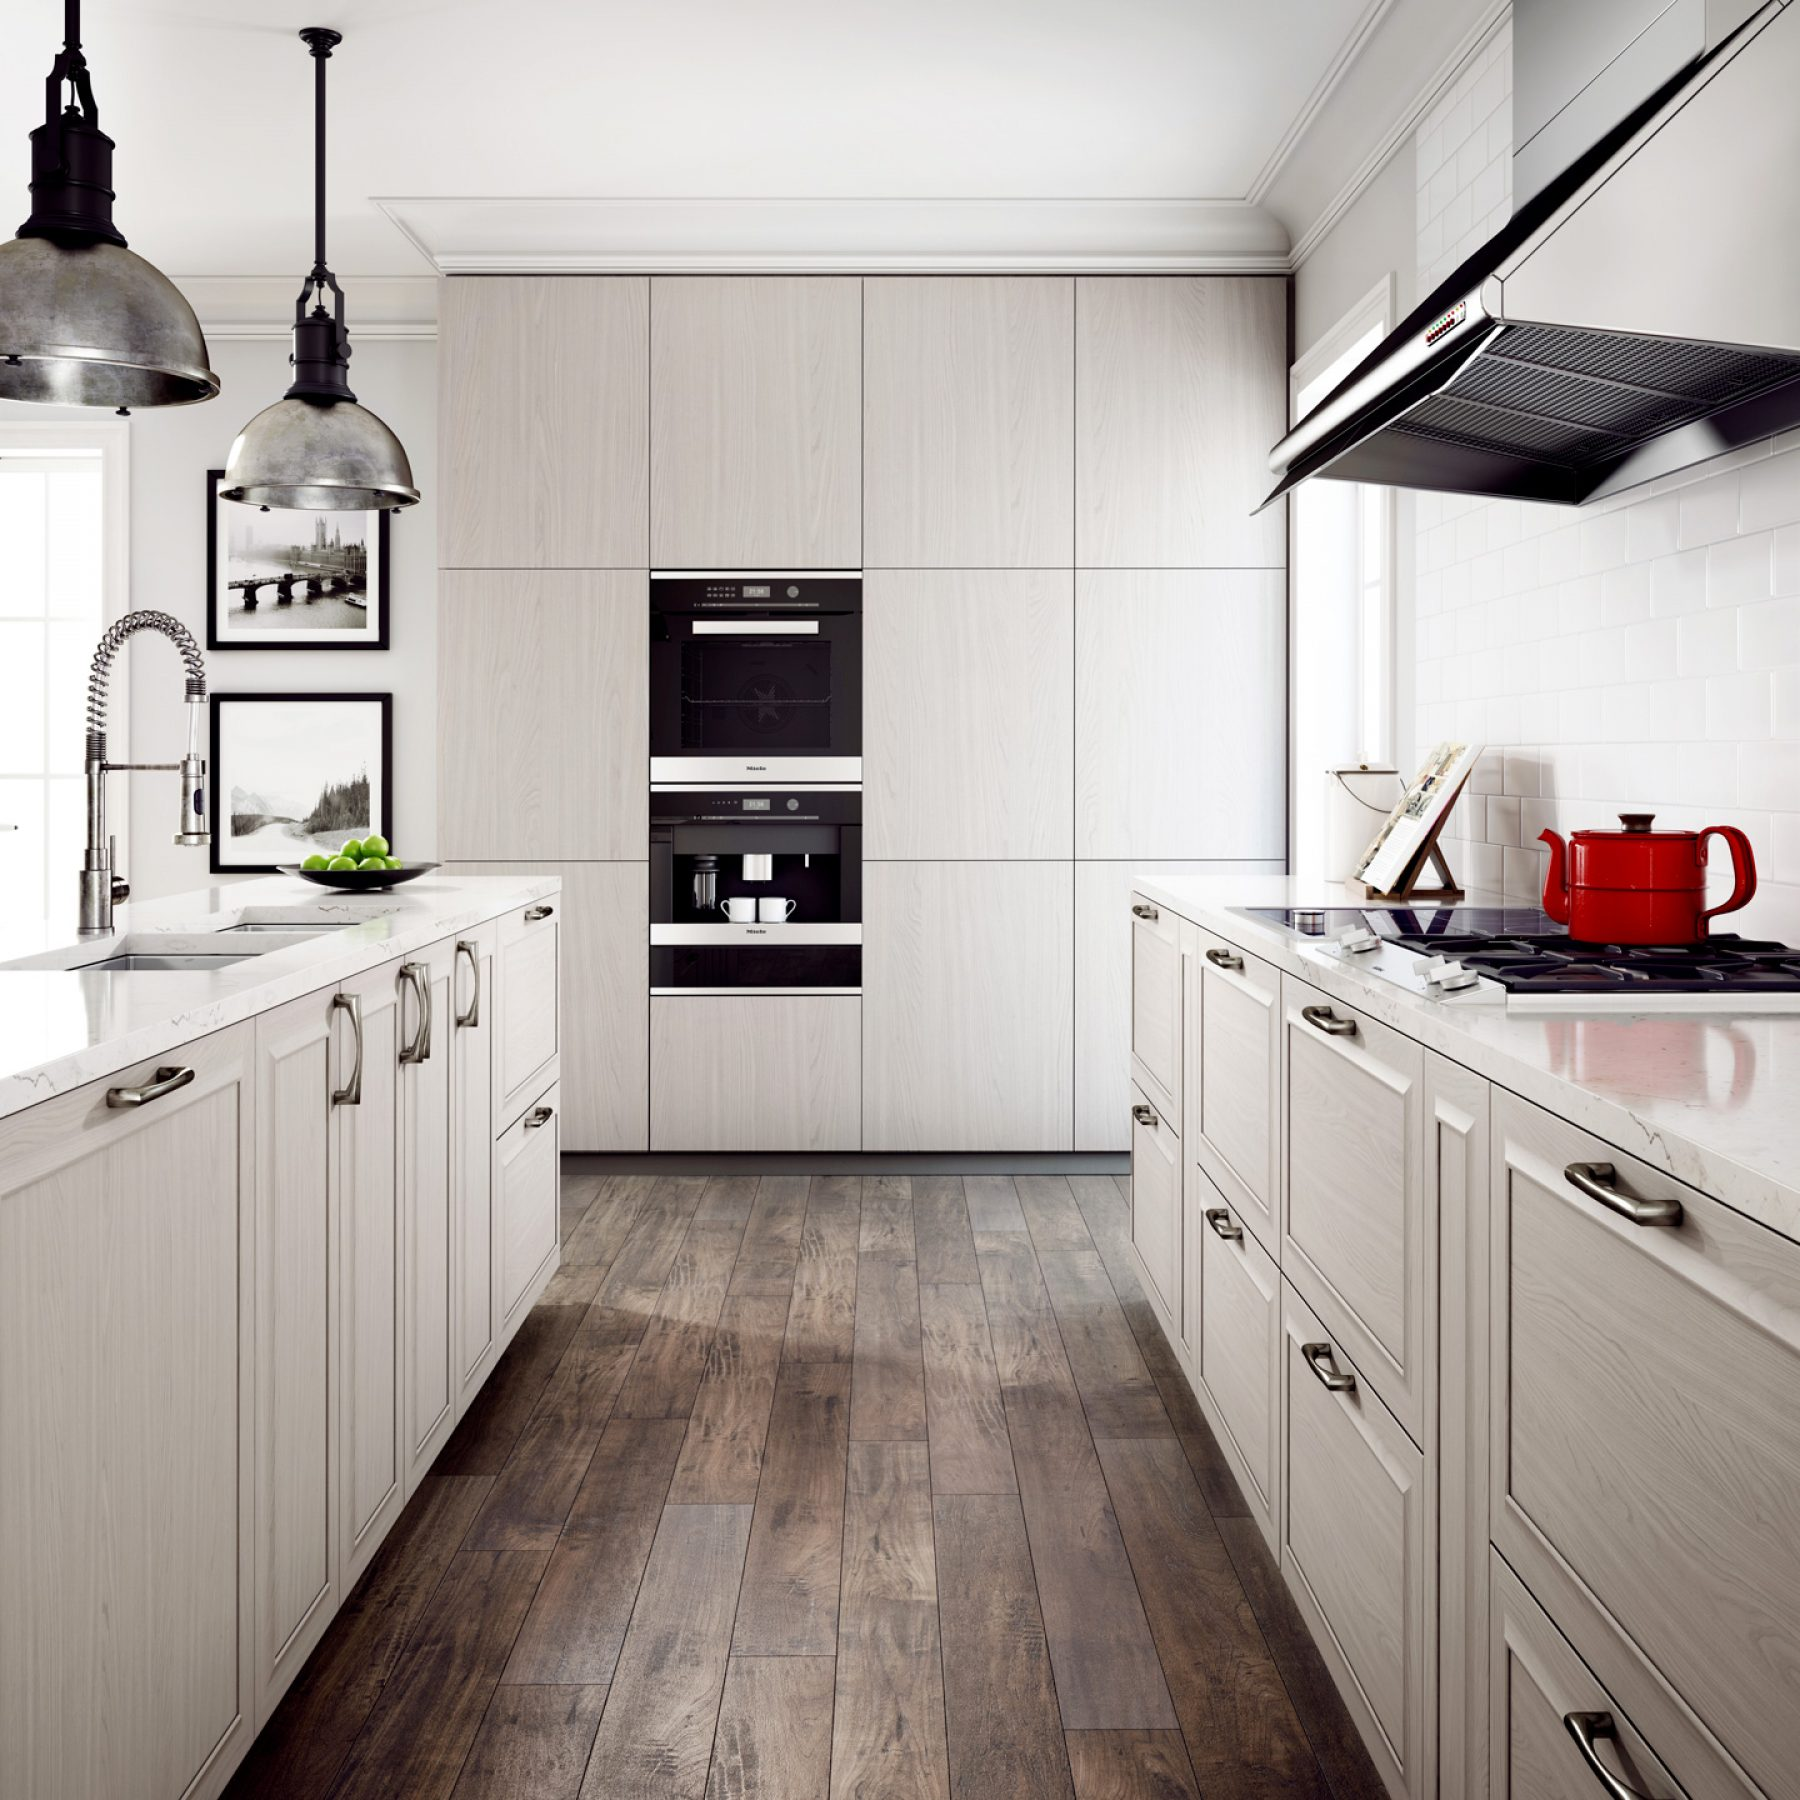 3d-drawing-chic-realistic-kitchen